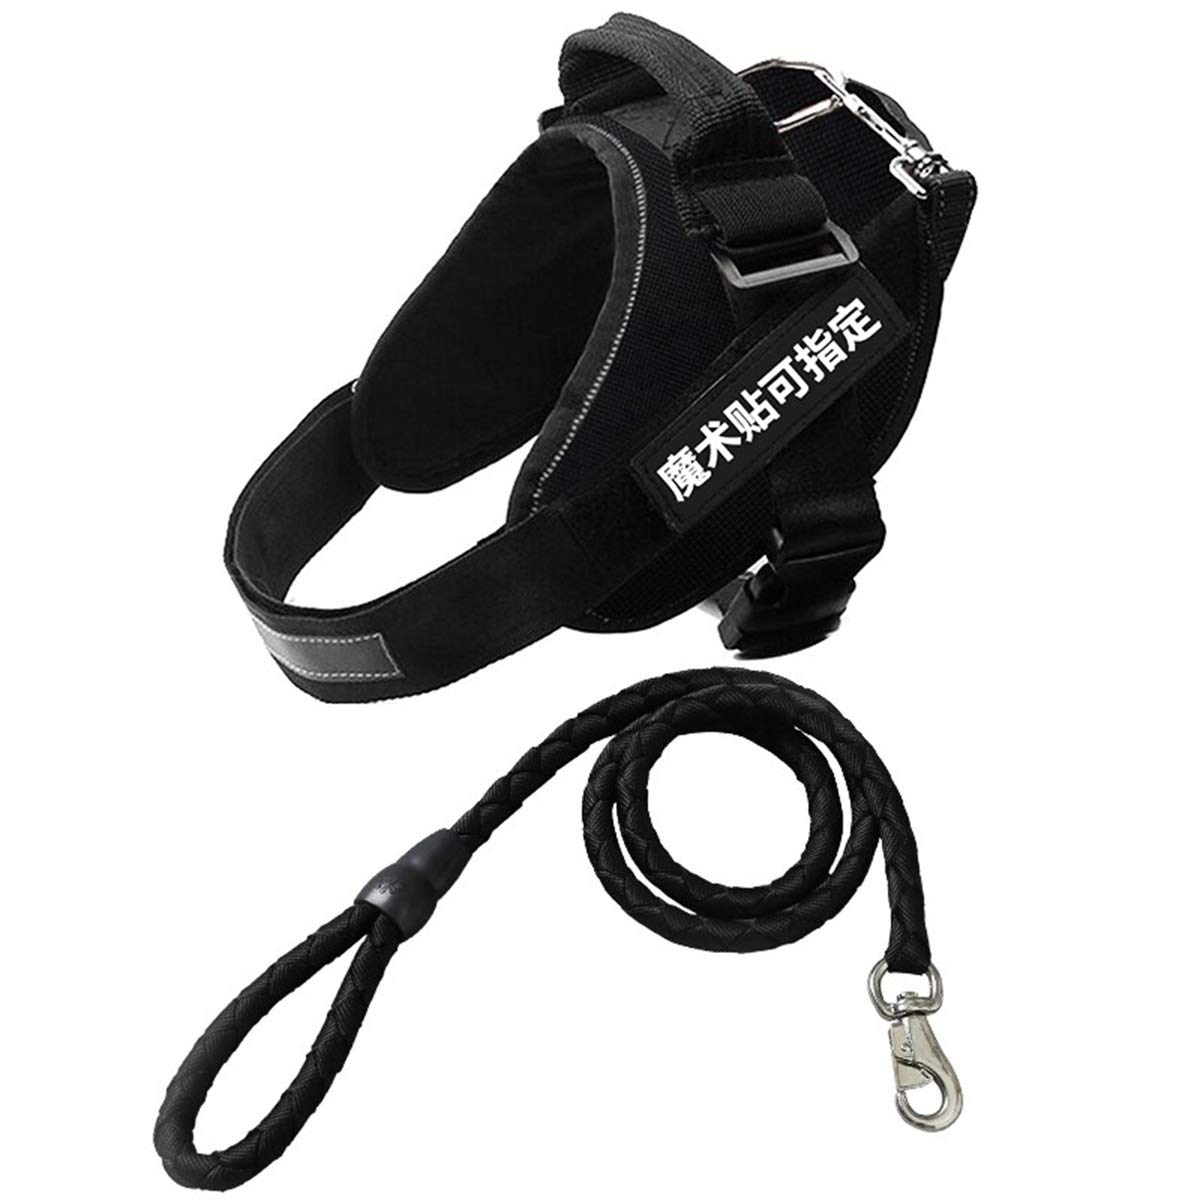 Black XL Black XL Dog Chest Strap with Traction Rope, Dog Chain, Medium Dog Large Dog, Hyena Rope, Anti-Rush Chest Strap, wear-Resistant Traction Rope, 3 colors Optional (color   Black, Size   XL)